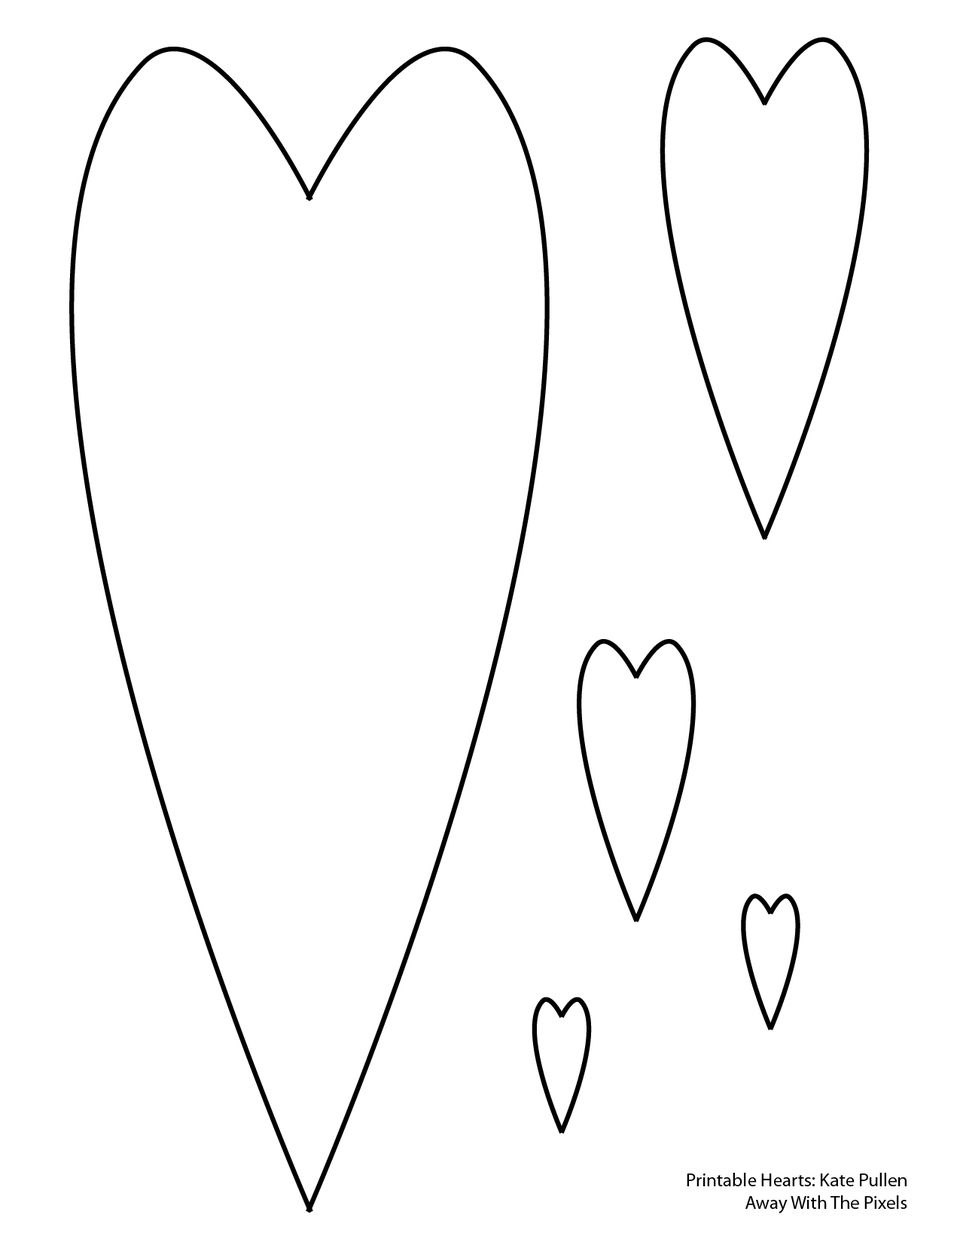 Free Printable Heart Templates Throughout Free Printable Heart Templates